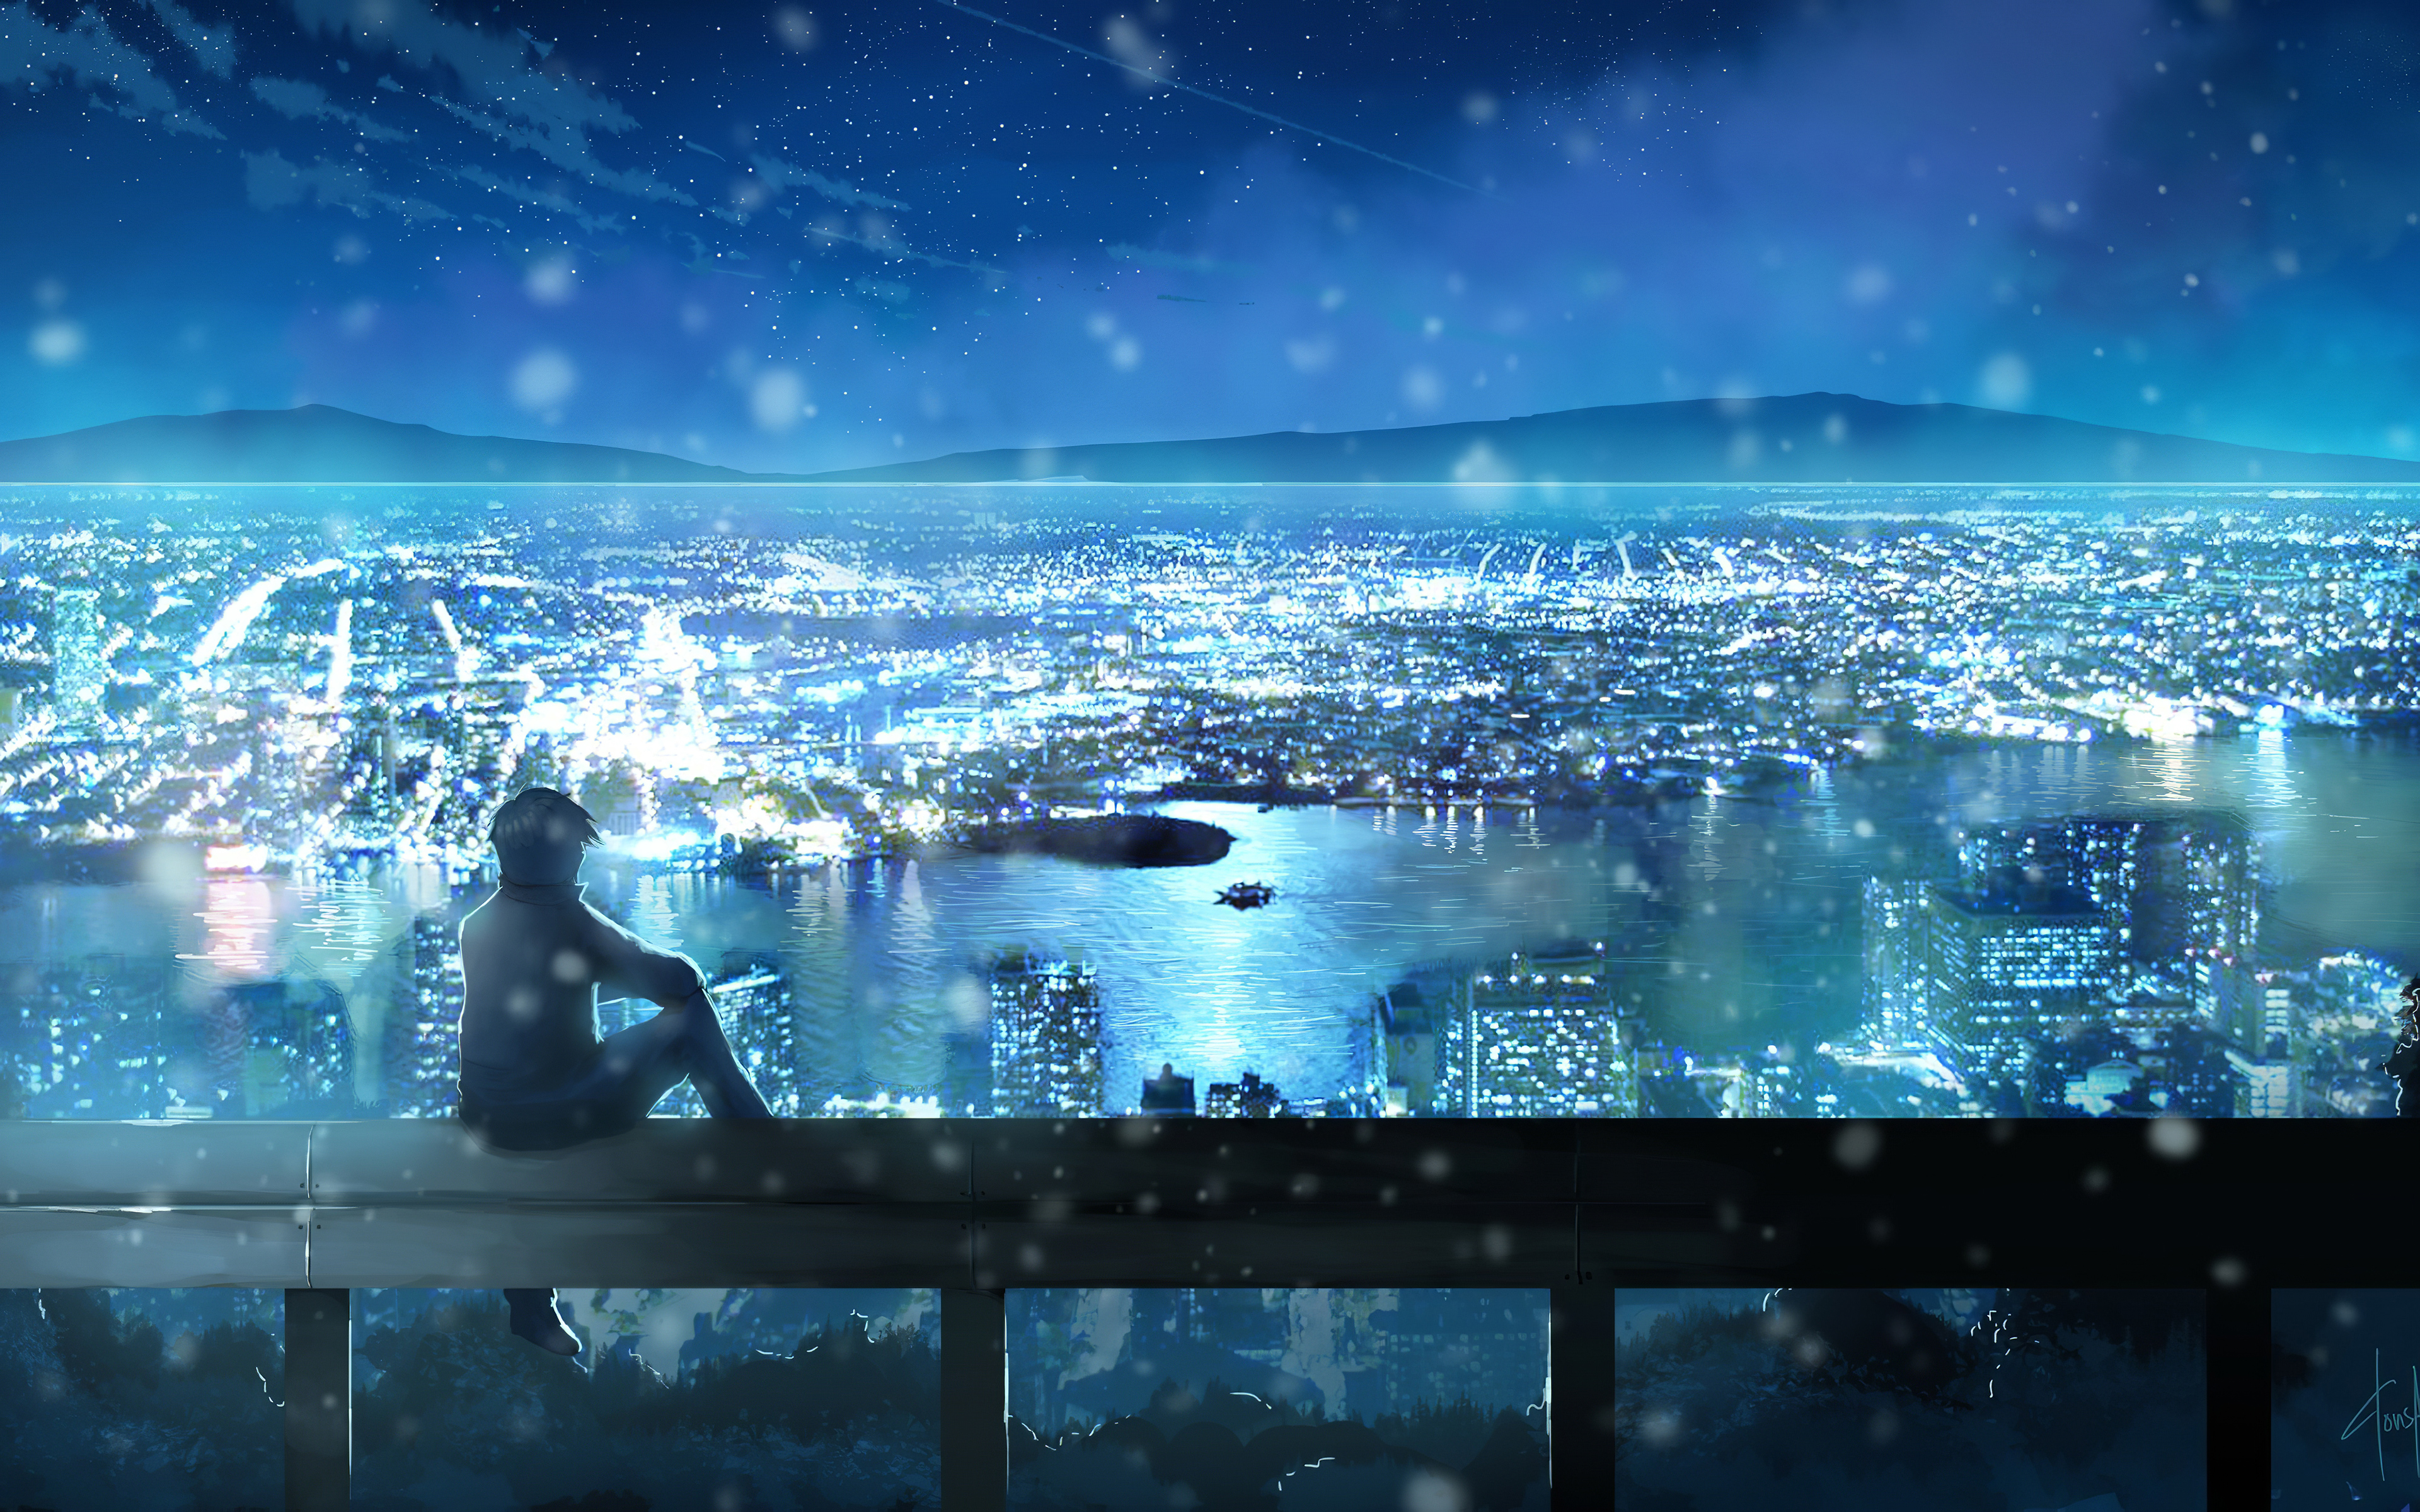 Download and install anime wallpaper 4k premium apk on android. City Looks Nice From Here Anime